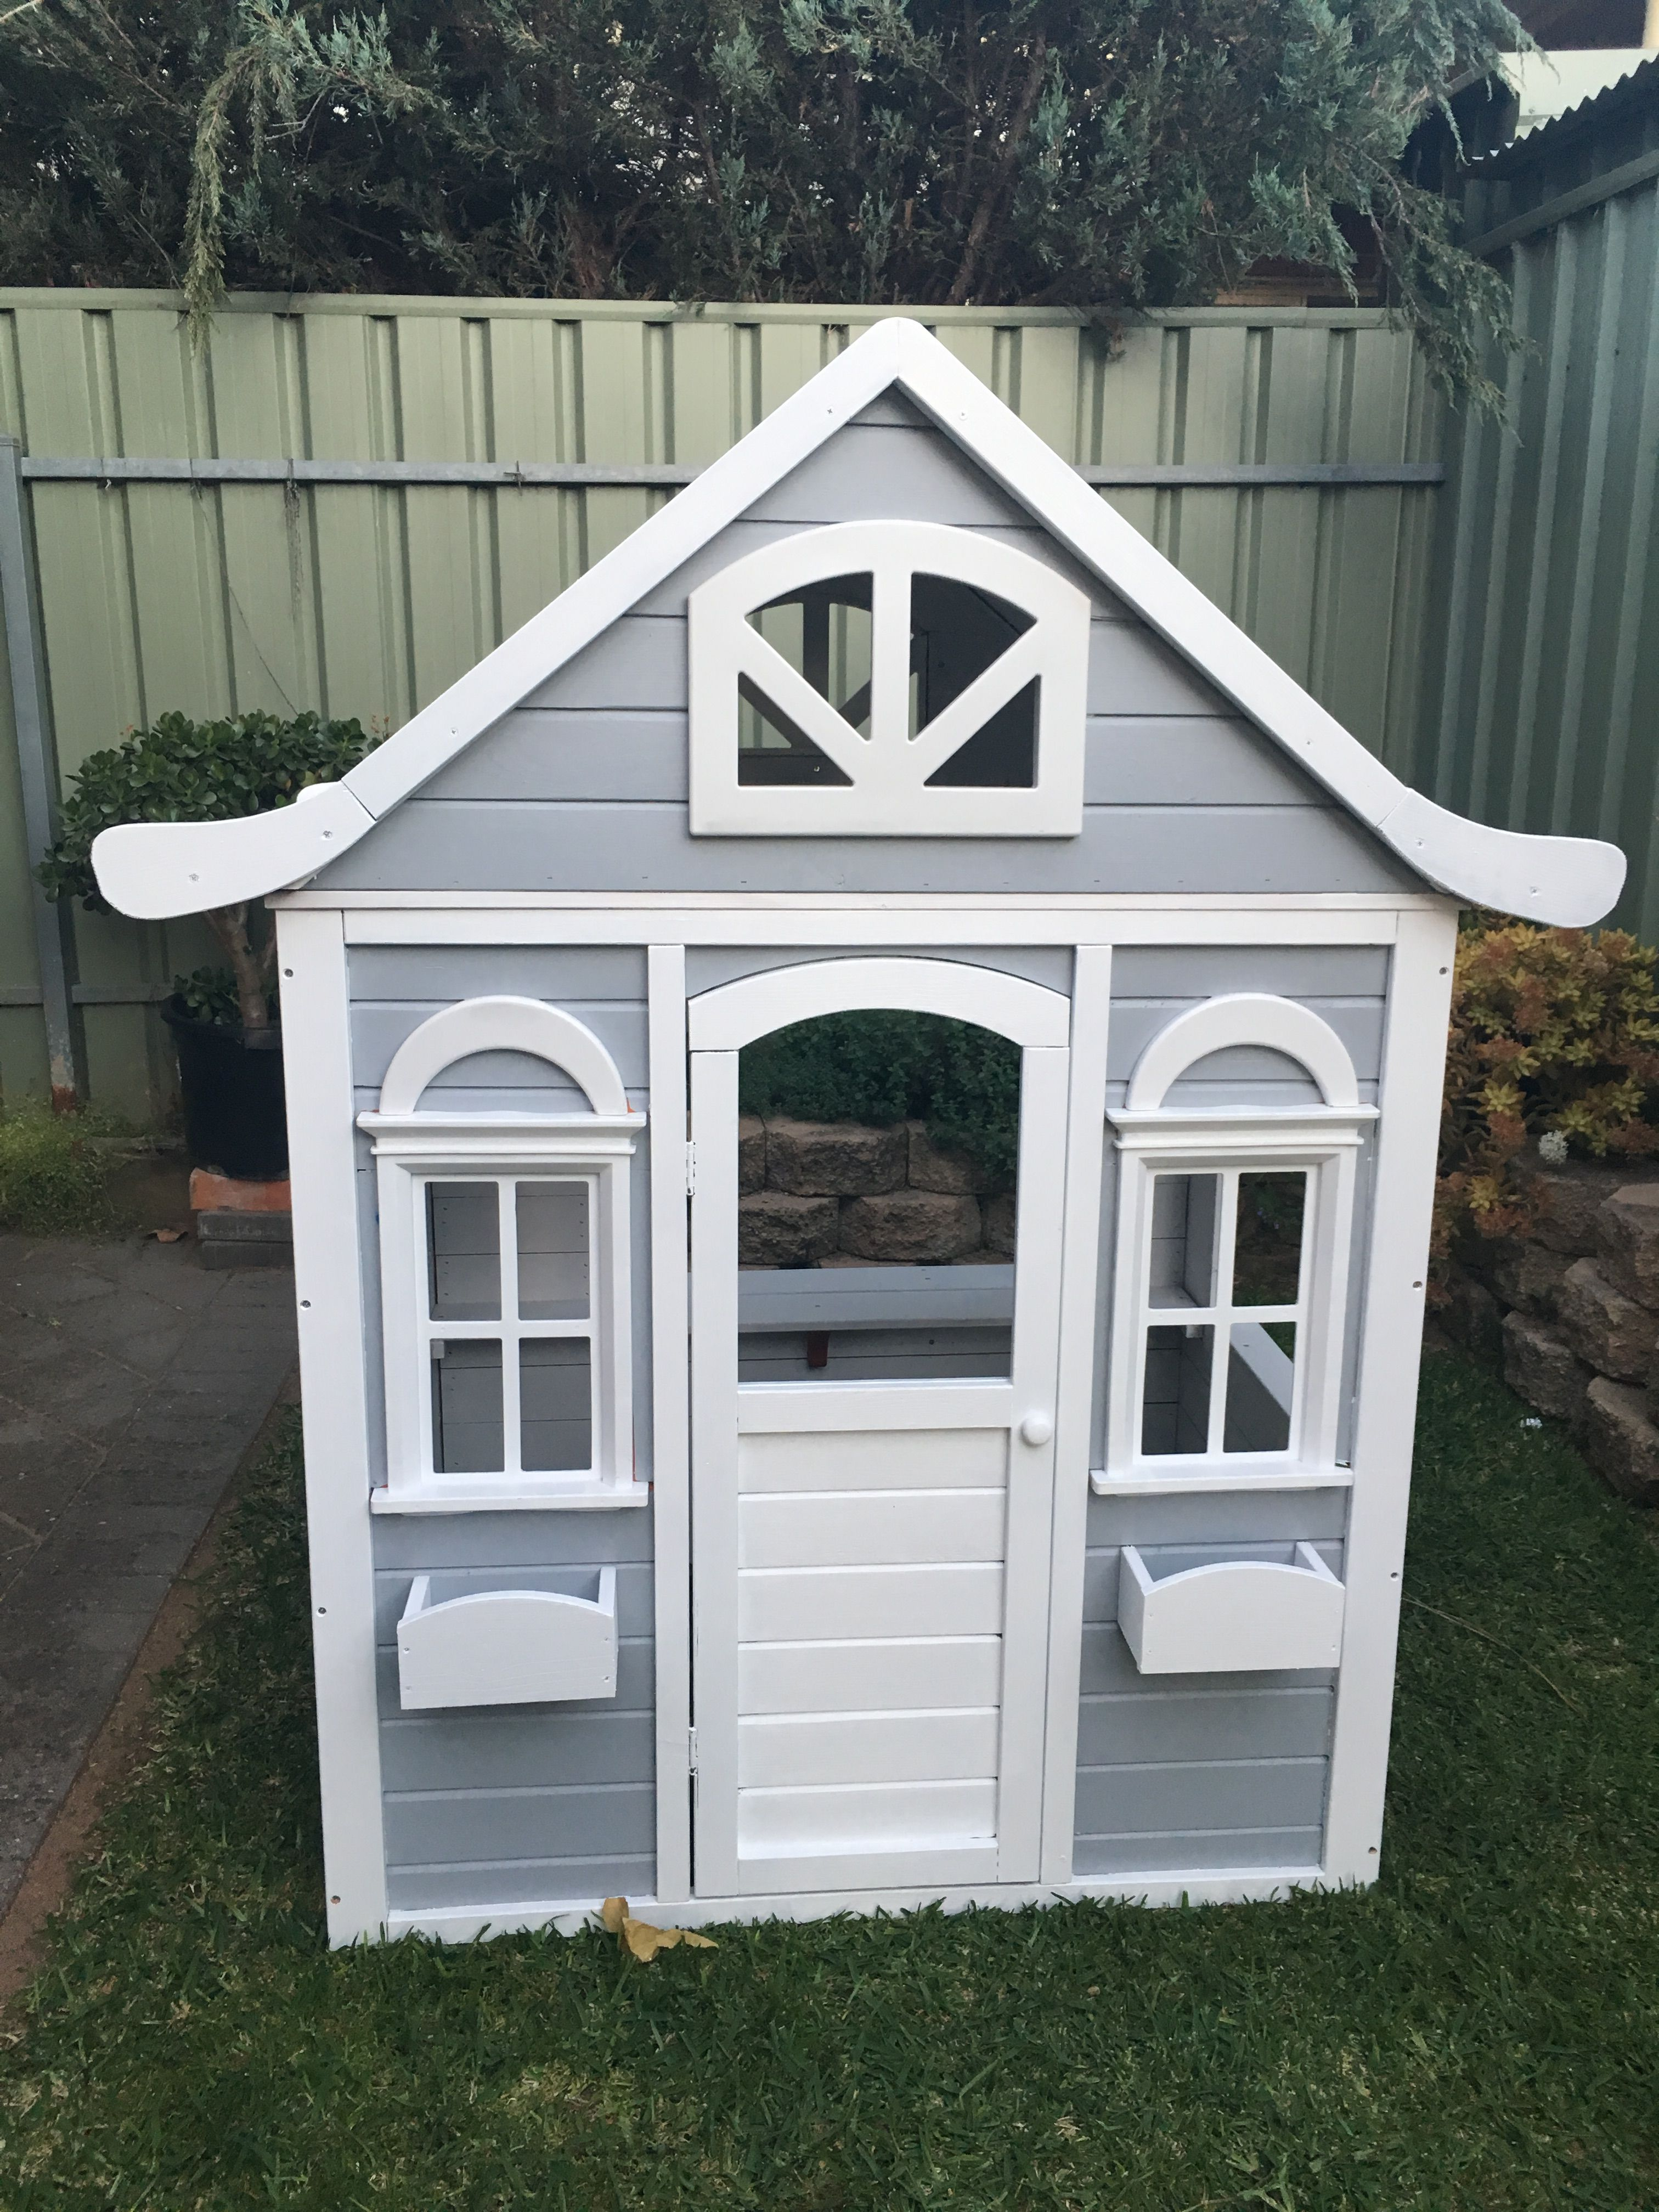 Delightful Kmart Cubby House Converted.